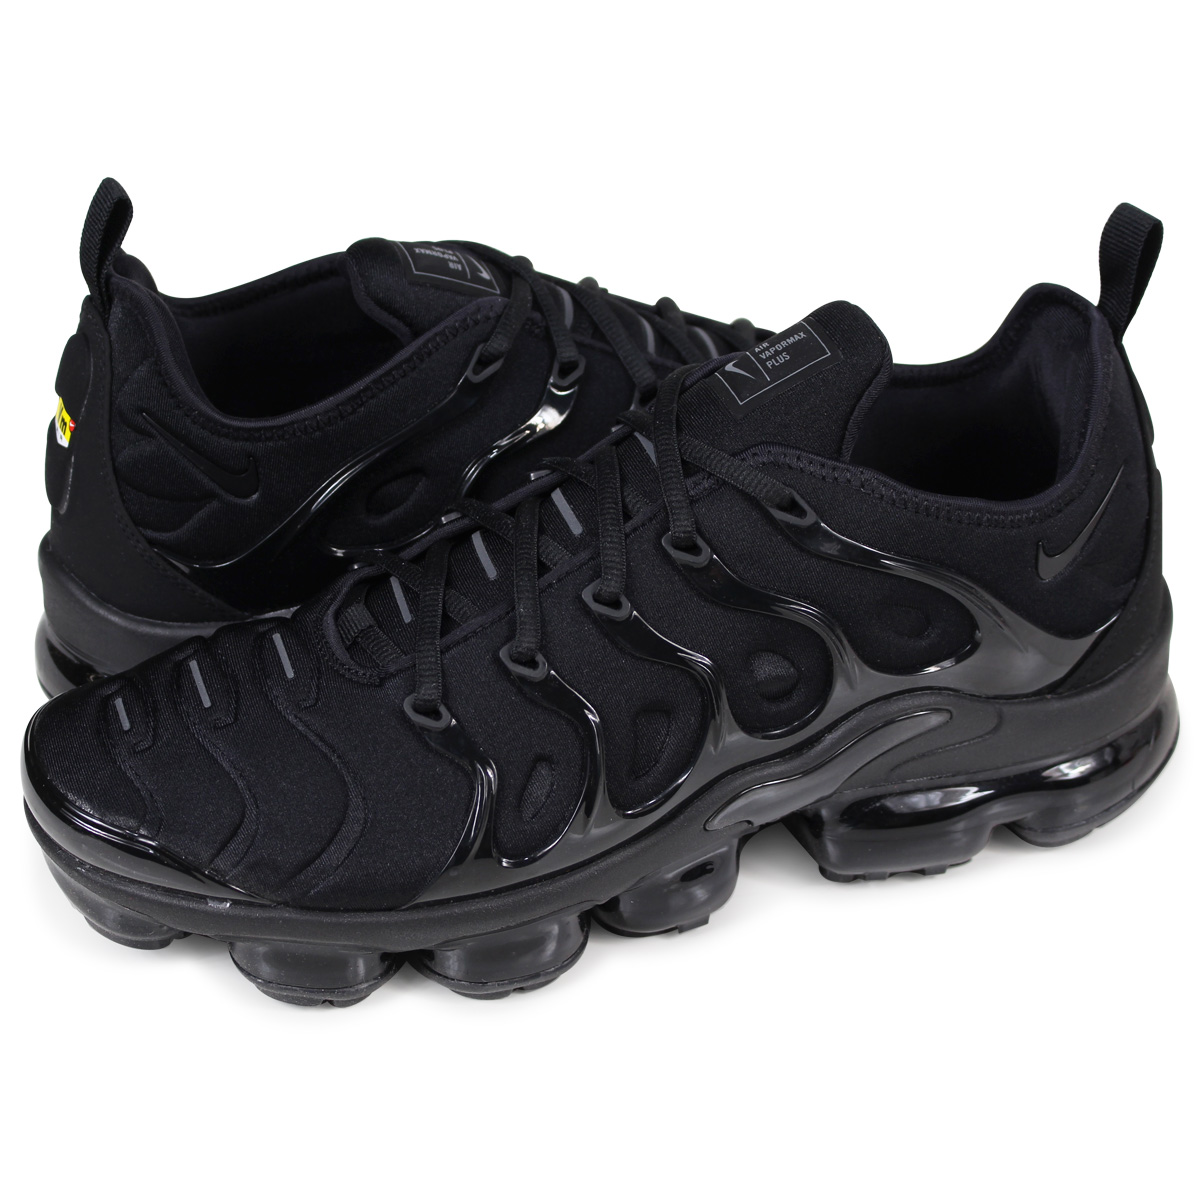 NIKE AIR VAPORMAX PLUS Nike air vapor max plus sneakers men 924,453-004  black 315 Shinnyu load